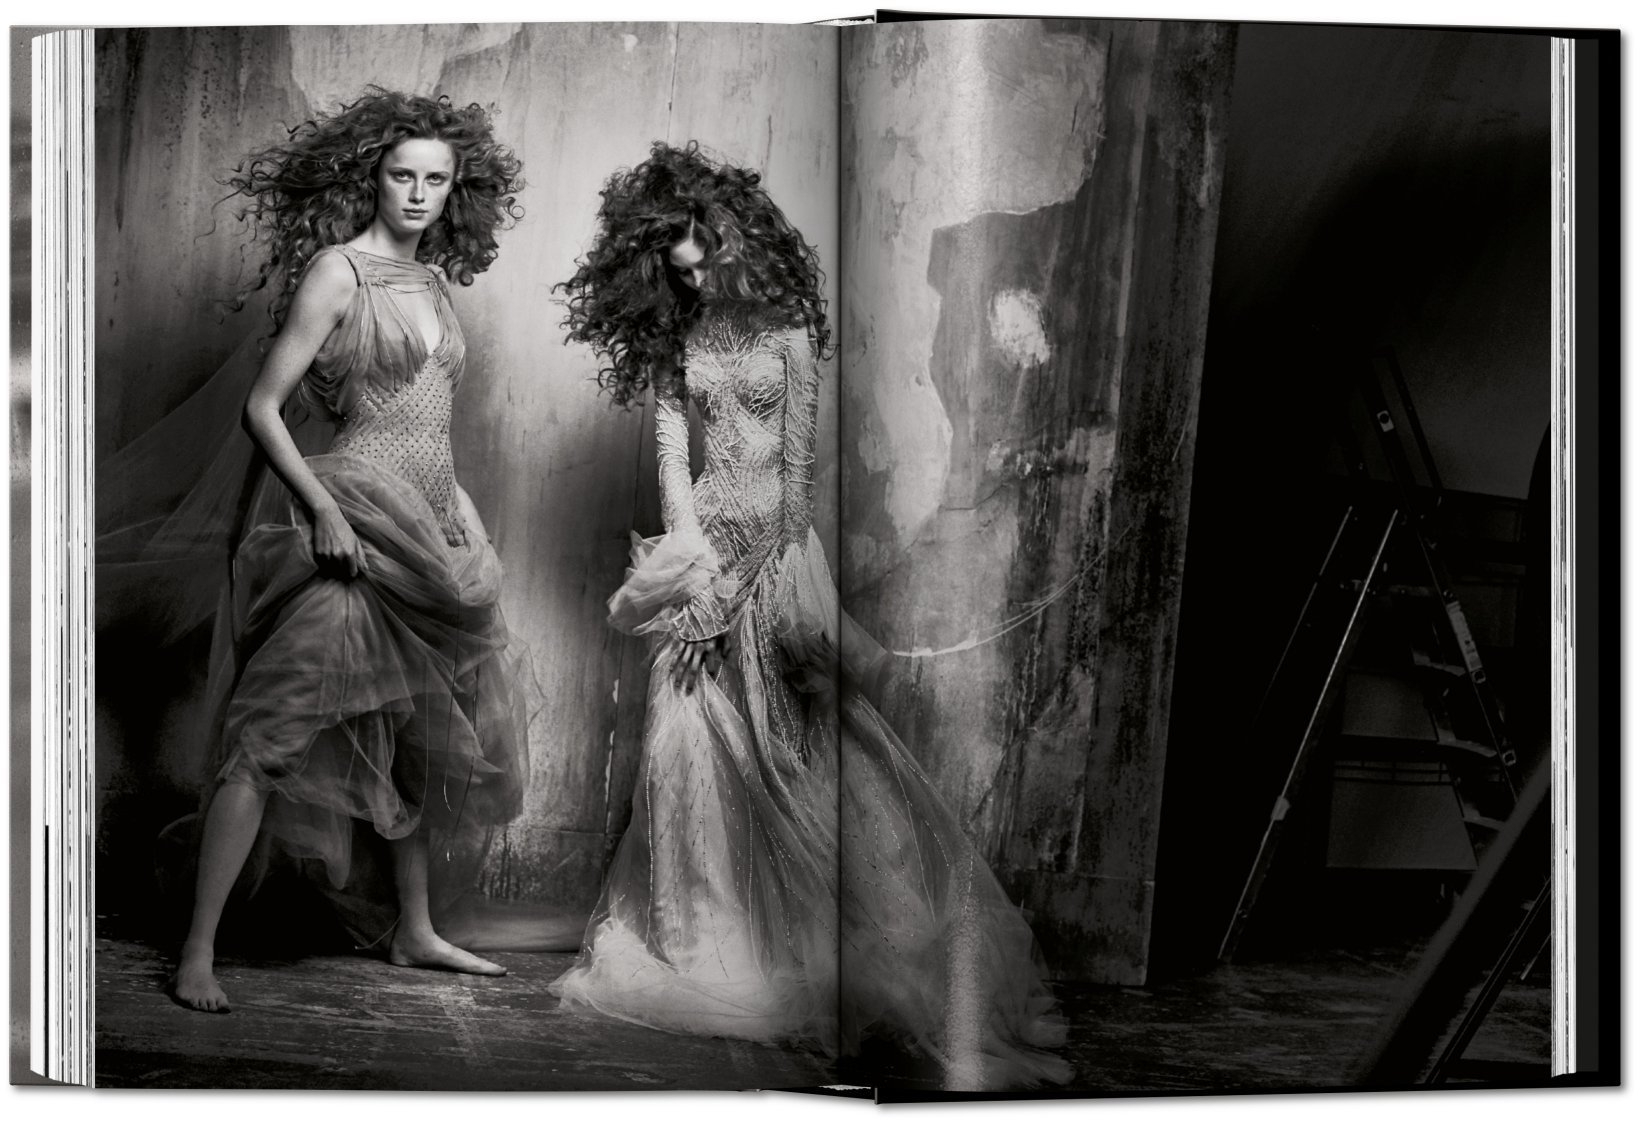 Buch, Peter Lindbergh on Fashion Photography - TASCHEN - Bild 8